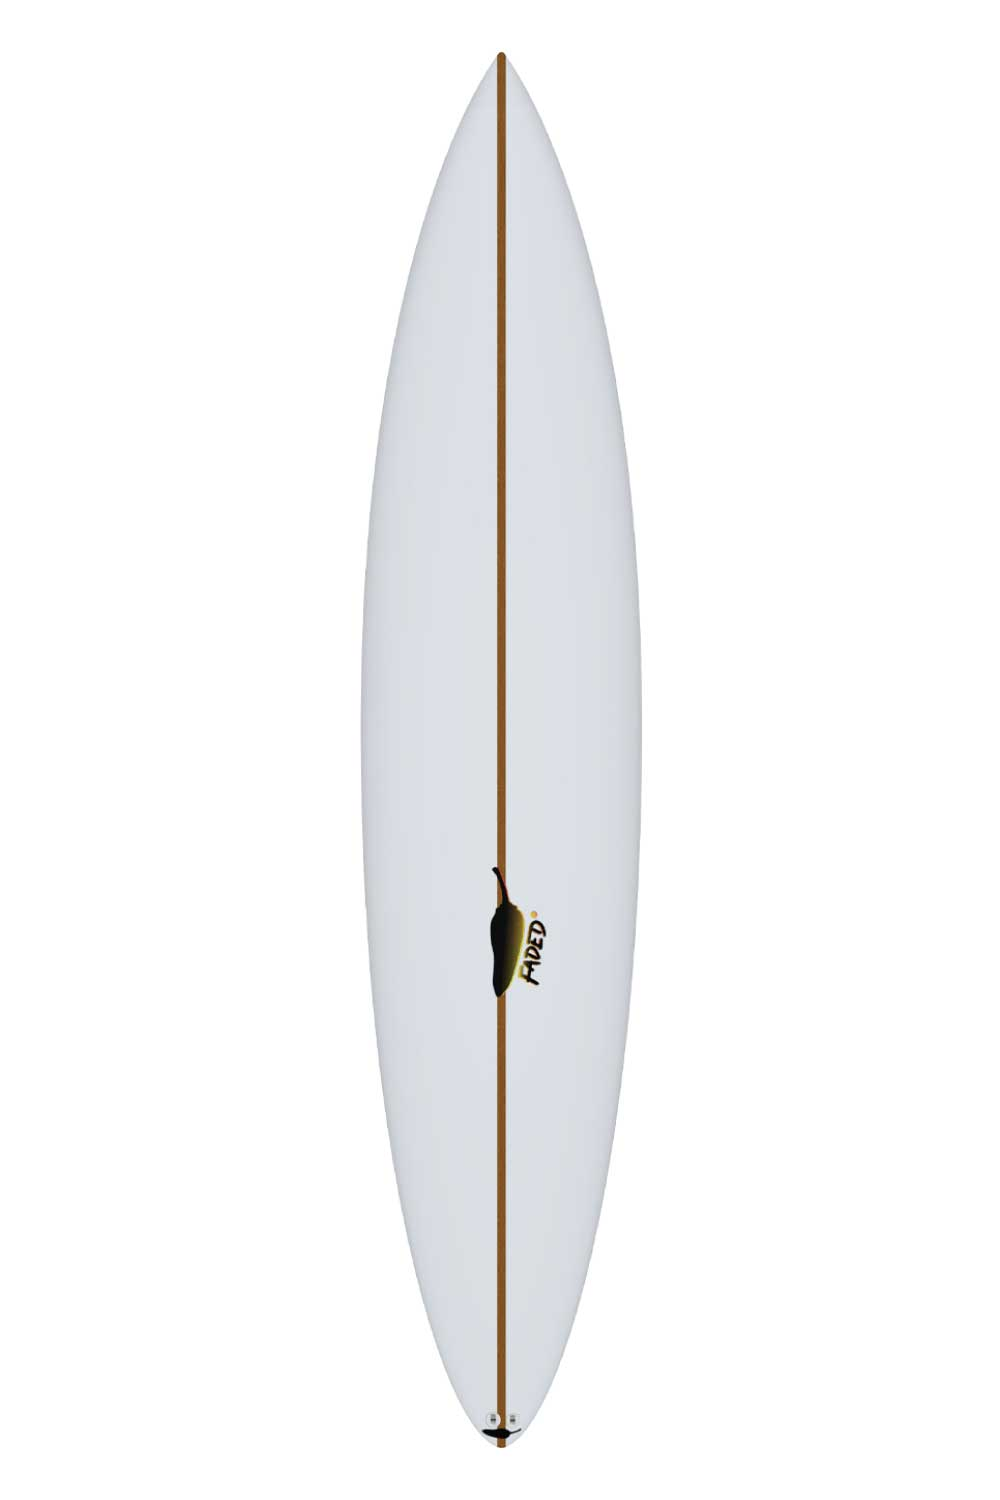 Chilli Faded 2.0 Gun Surfboard